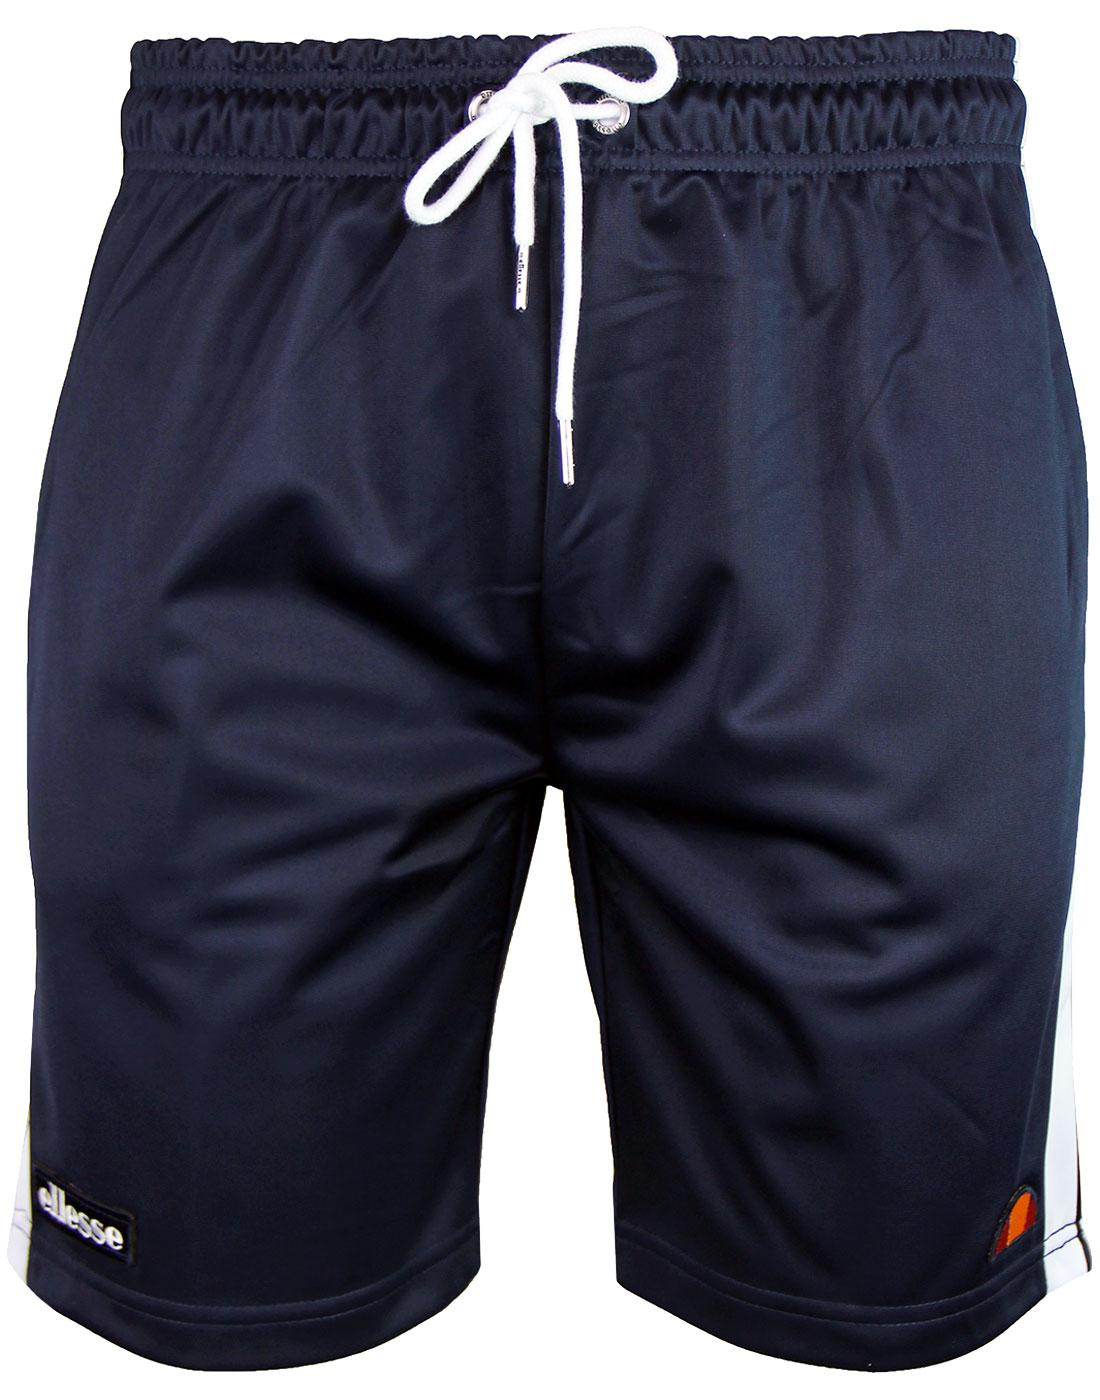 Legnano ELLESSE Men's Retro Eighties Casual Shorts